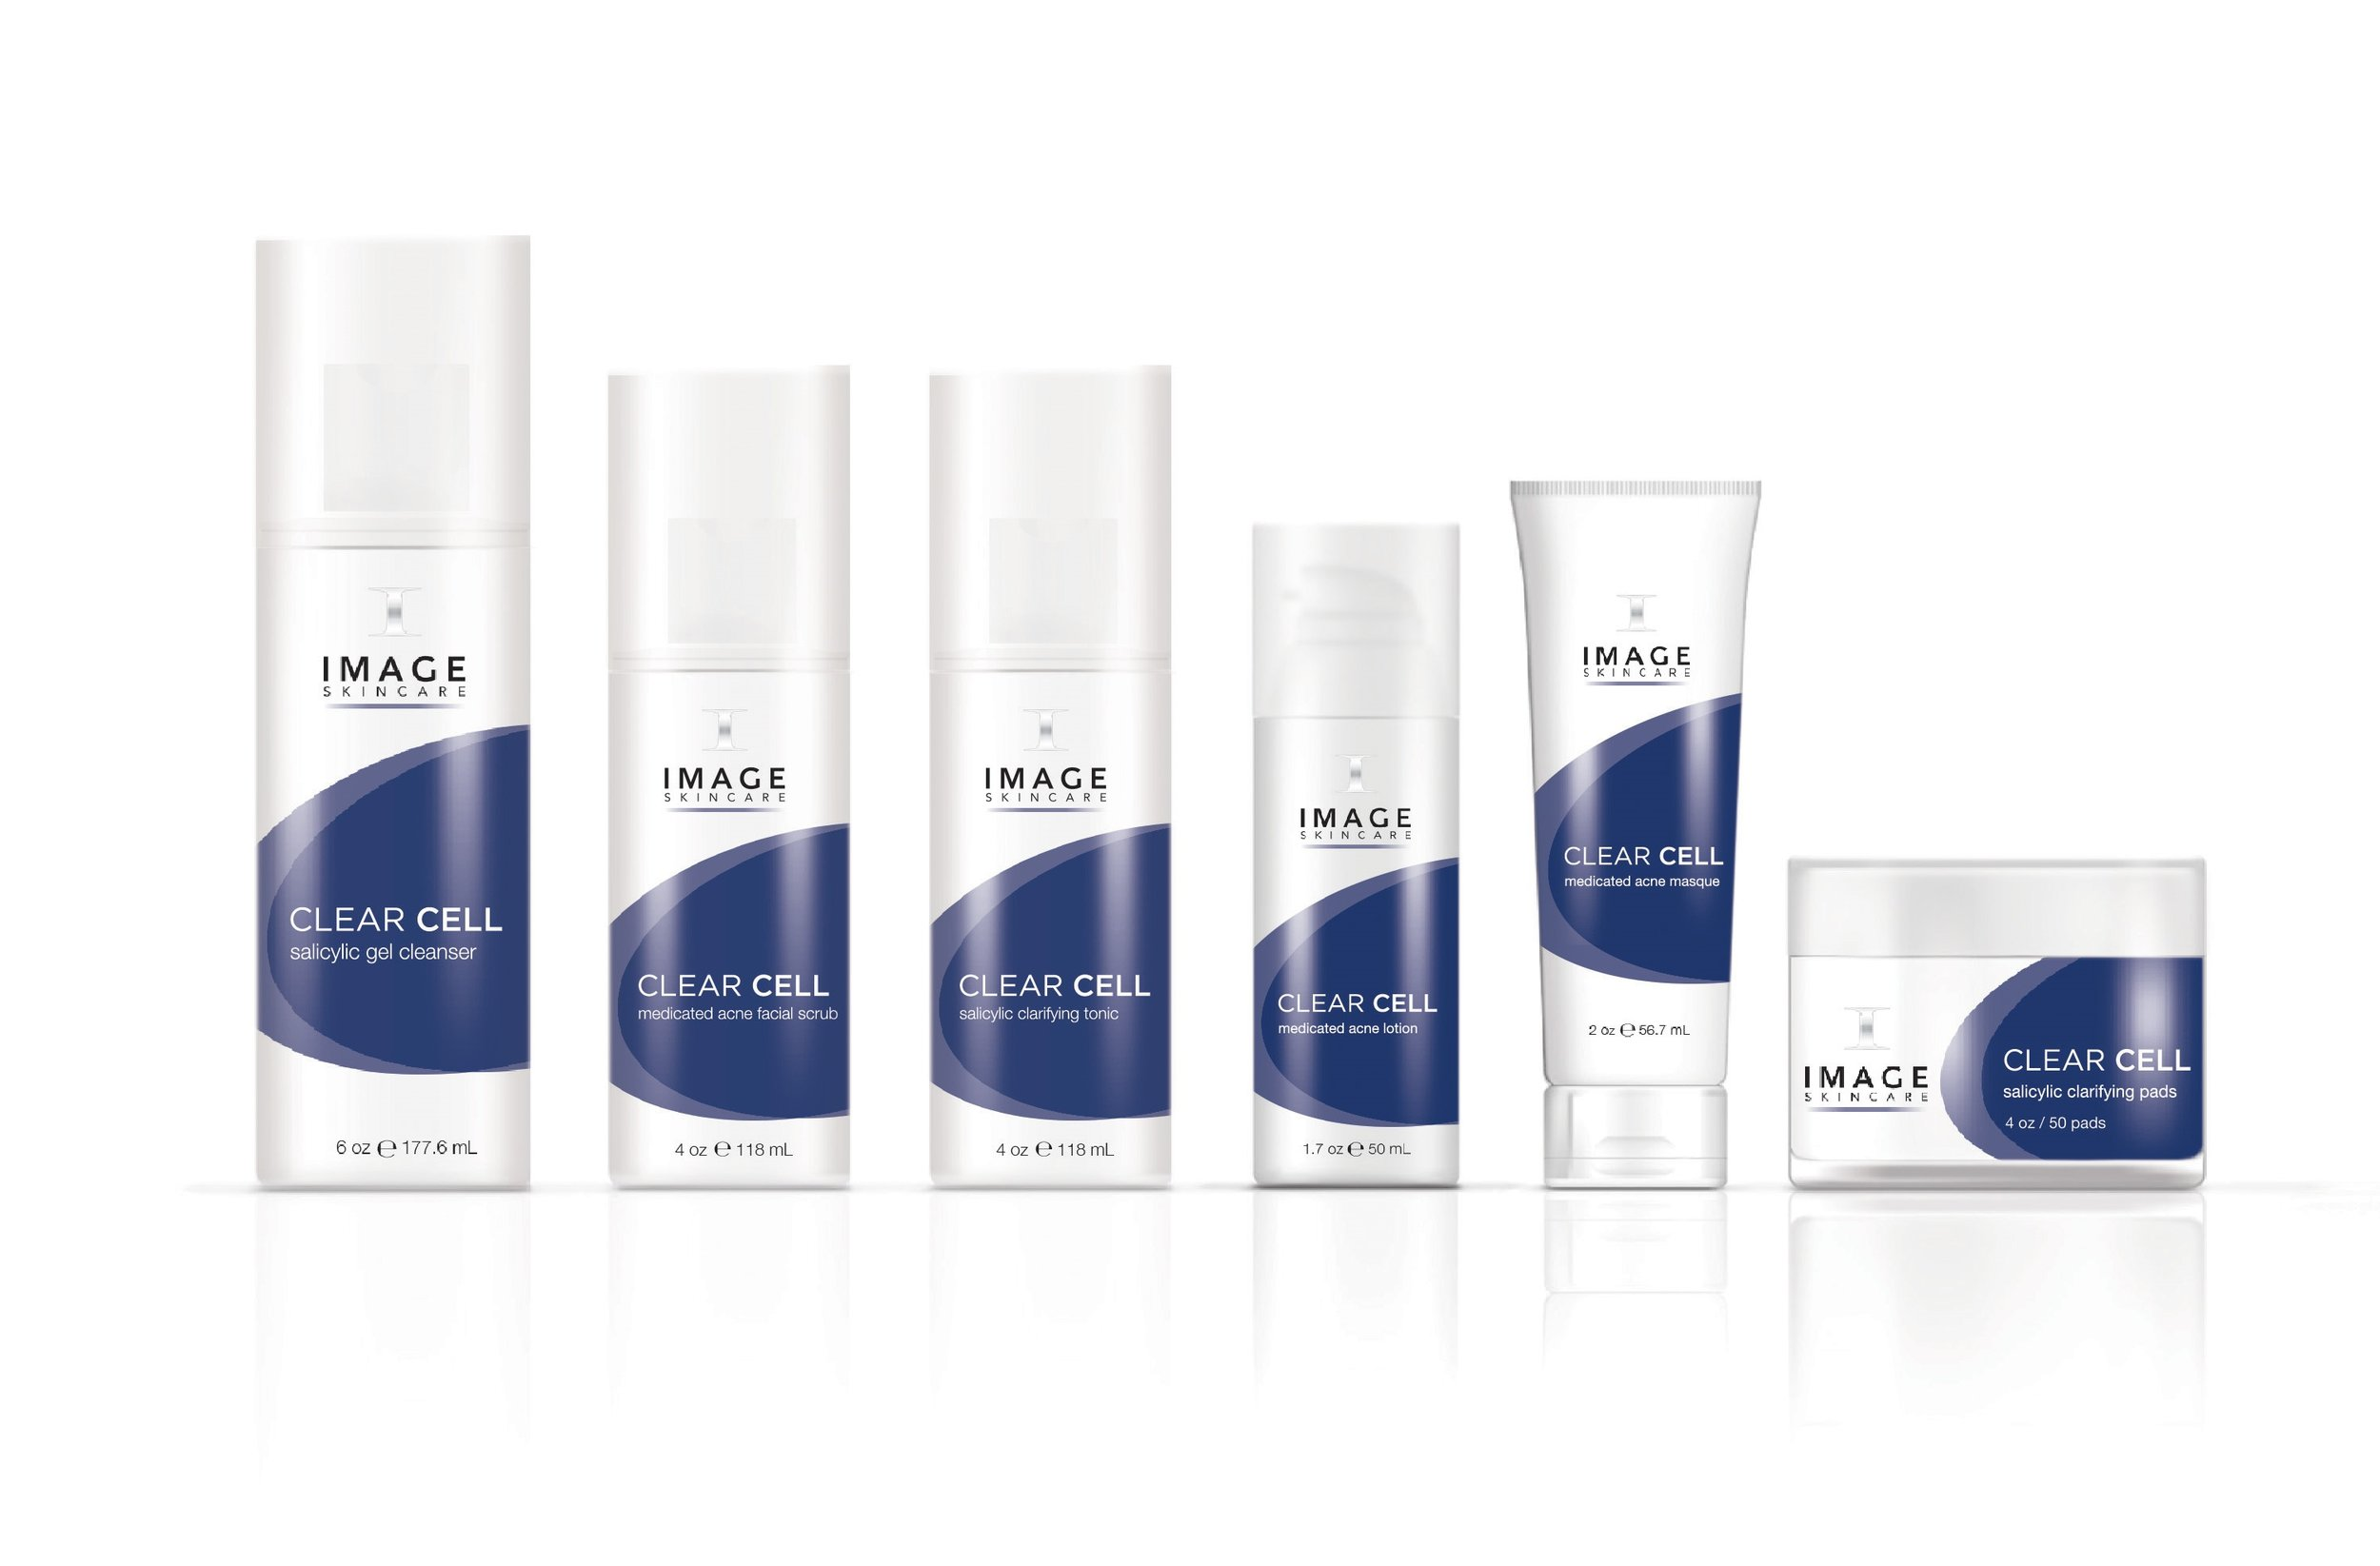 Image Skin Care - Clear Cell.jpg